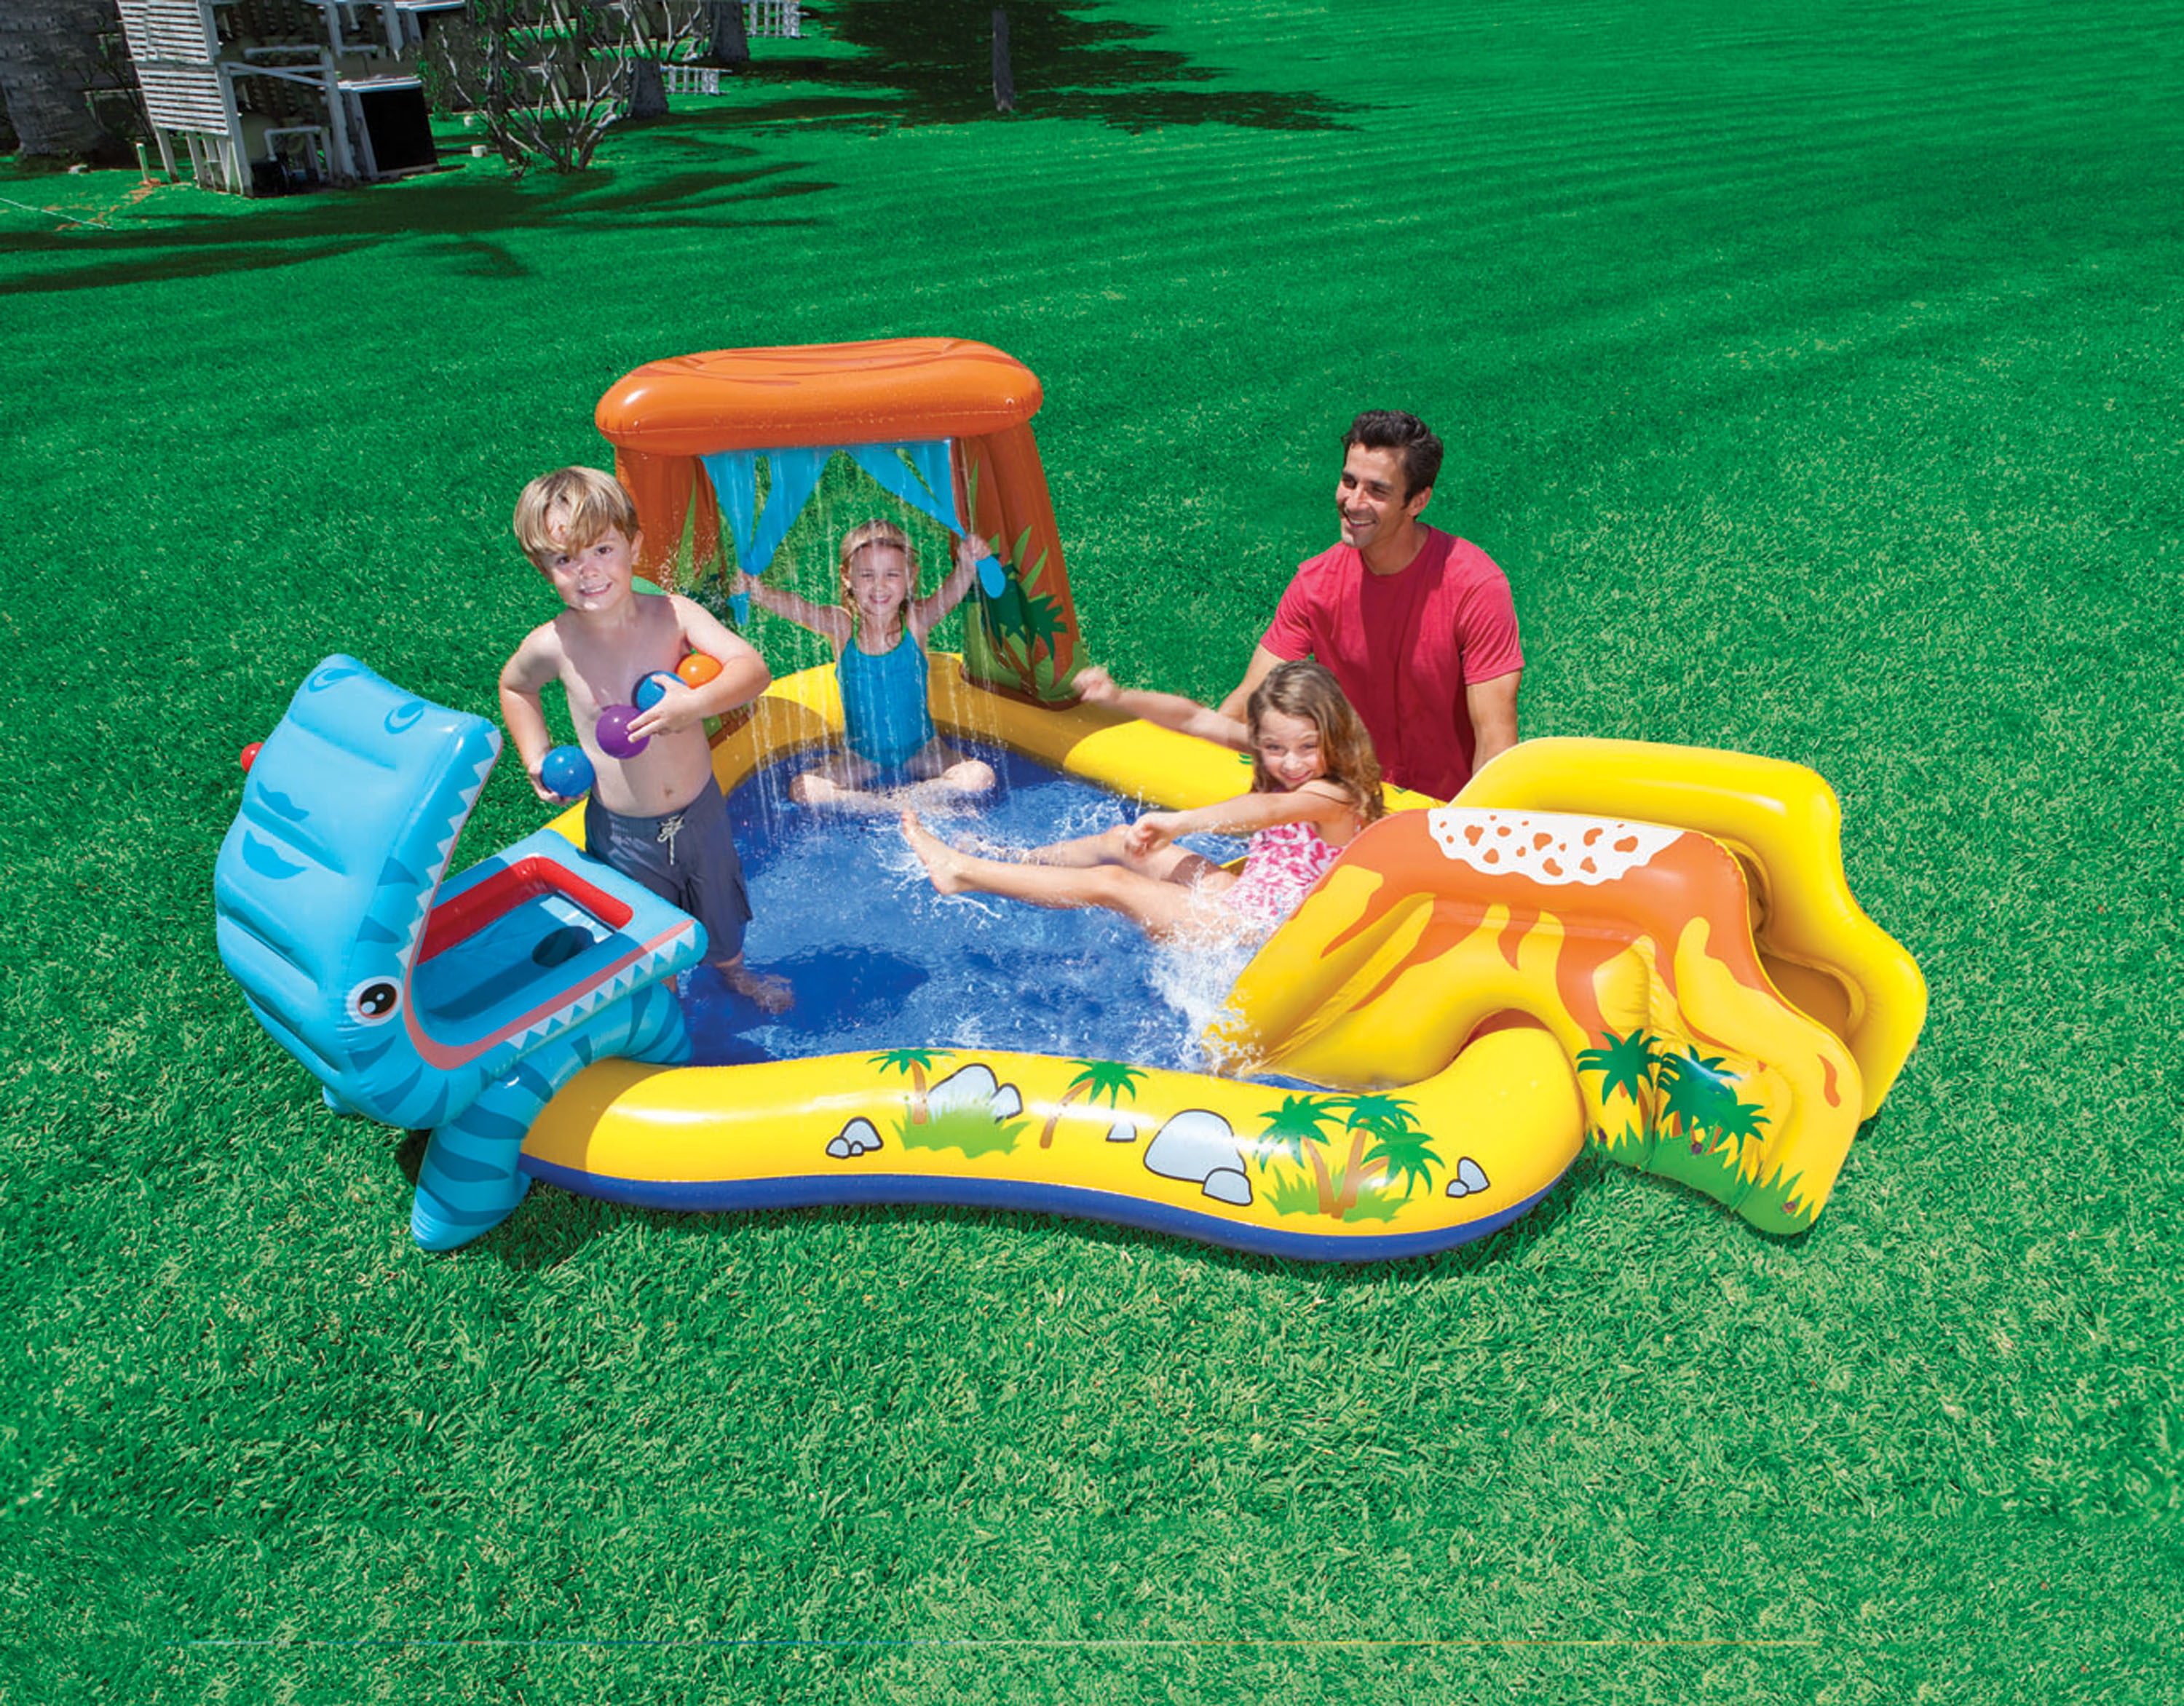 Inflatable Pool Slide Intex intex dinosaur play center inflatable kids set & swimming pool 57444ep